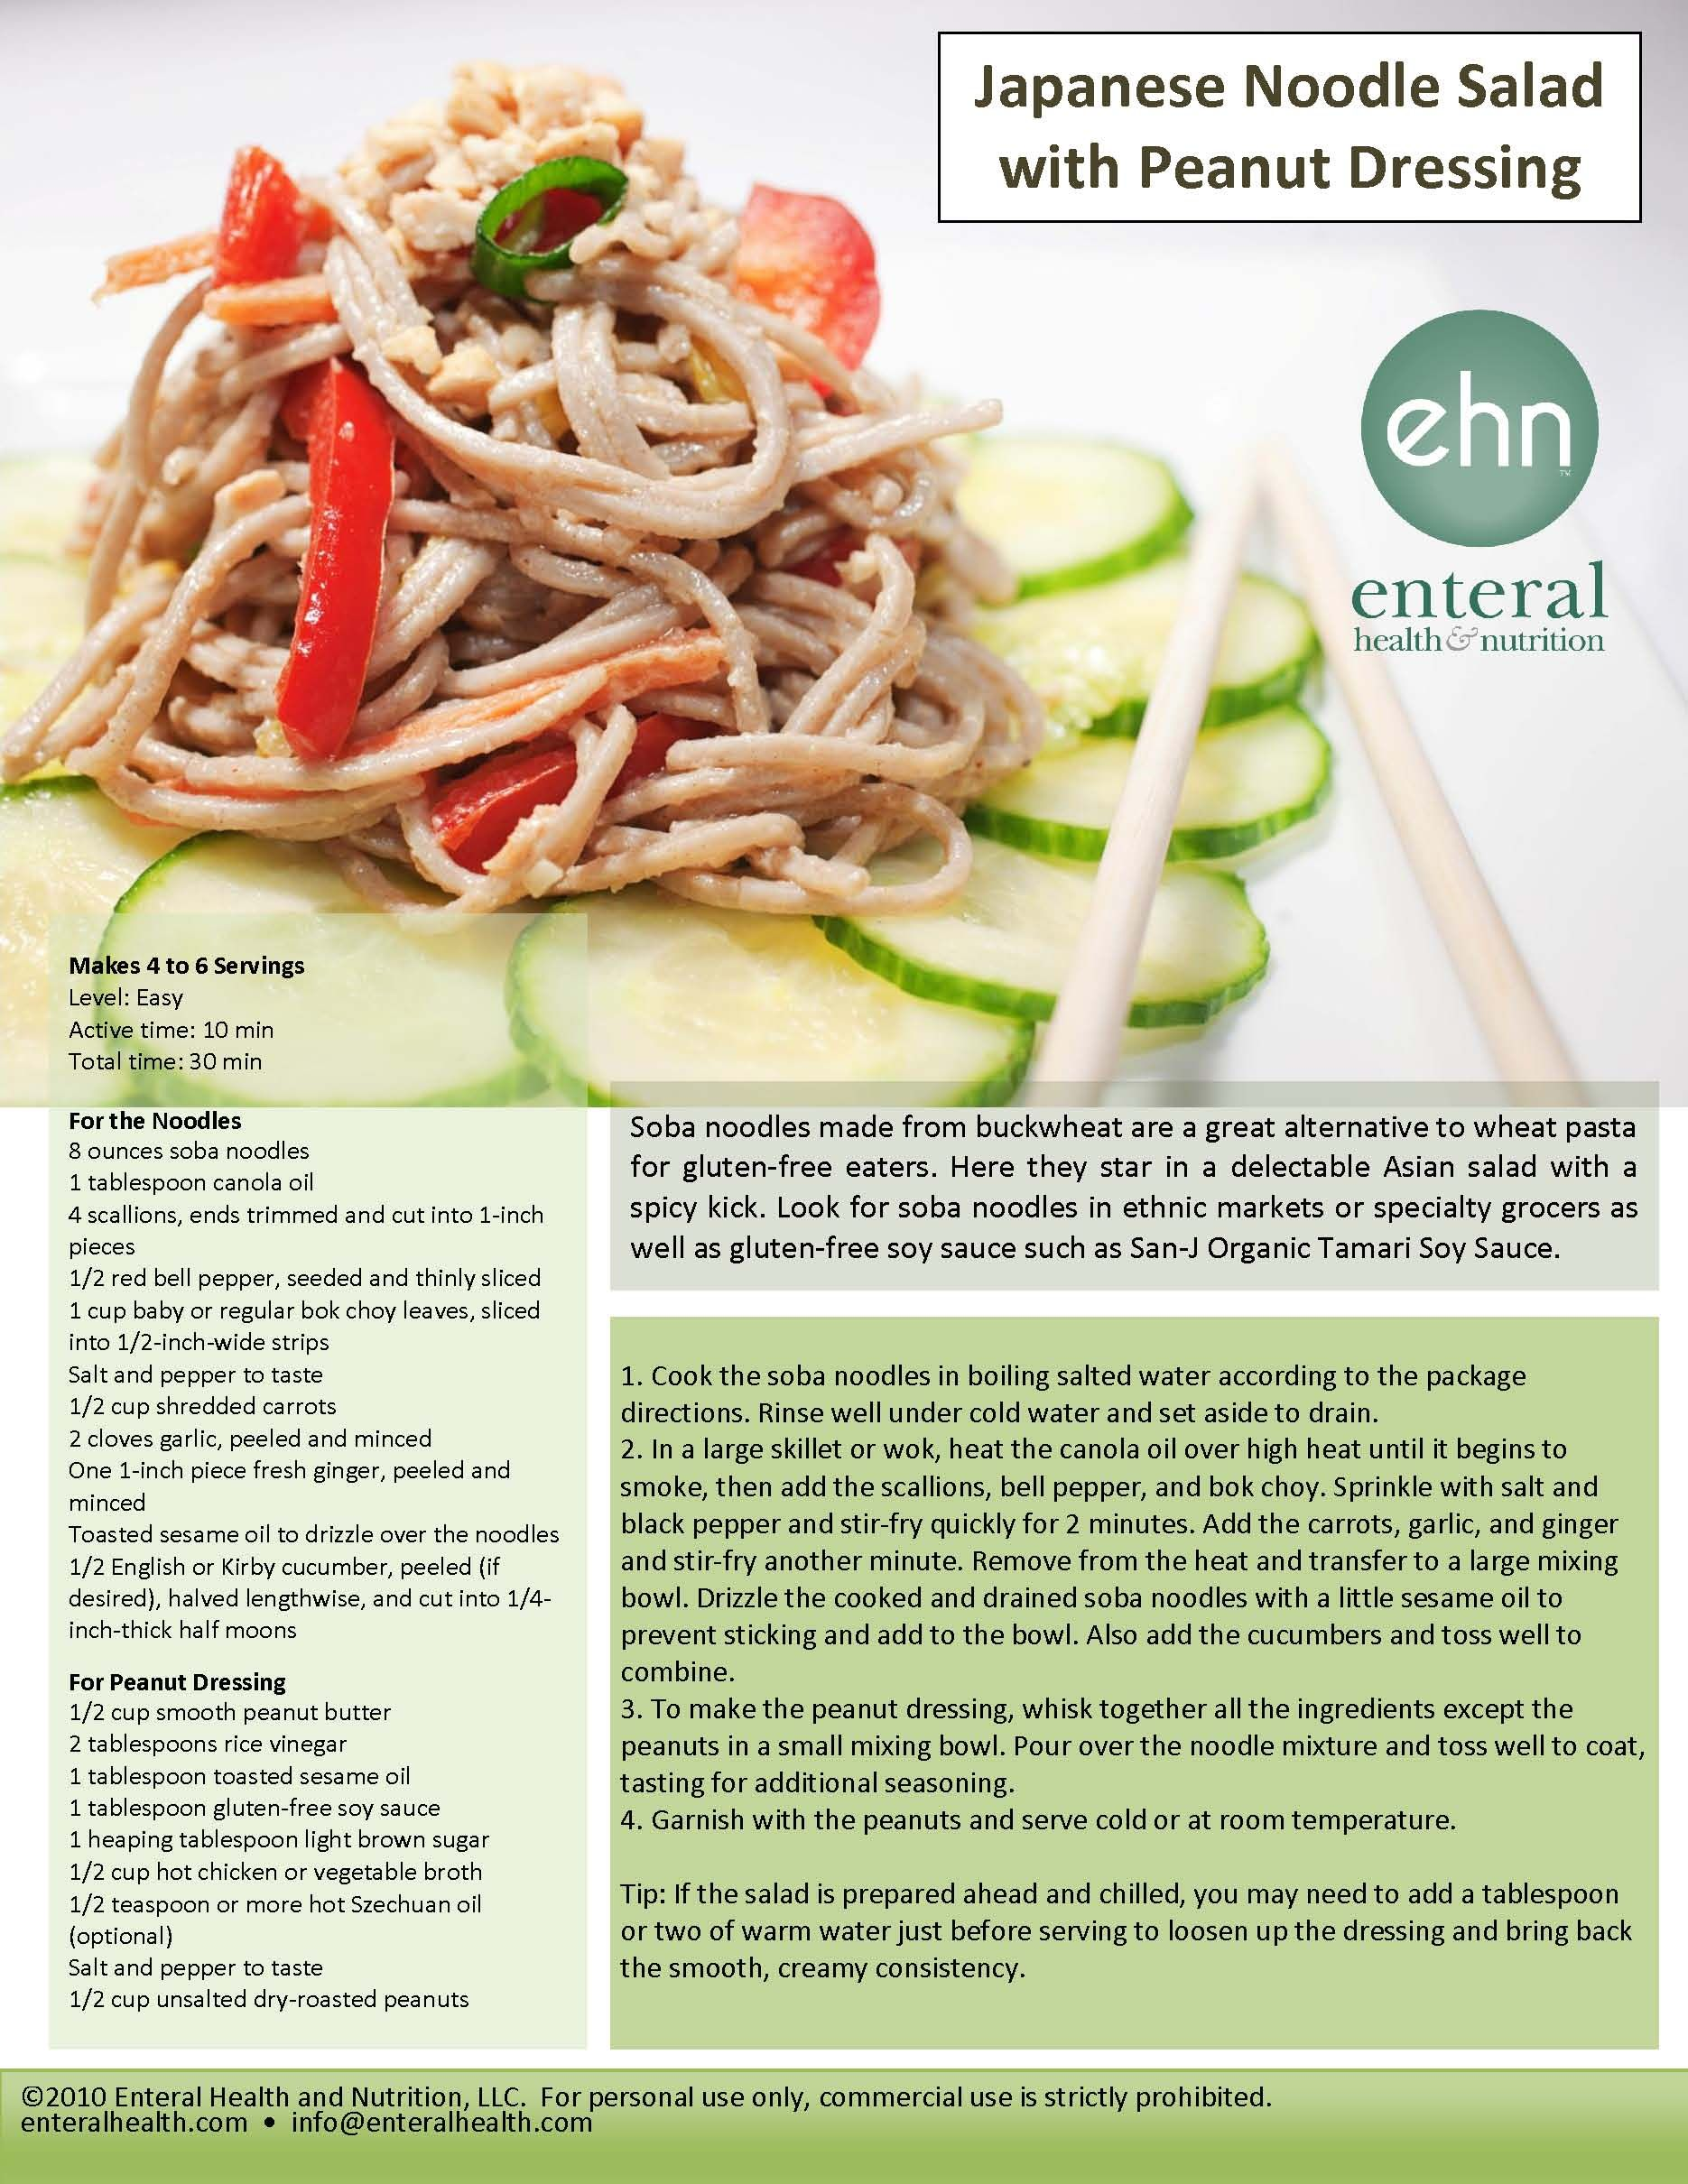 Soba noodles made from buckwheat are a great alternative to wheat pasta for gluten-free eaters. Here they star in a delectable Asian salad with a spicy kick. Look for soba noodles in ethnic markets or specialty grocers as well as gluten-free soy sauce such as San-J Organic Tamari Soy Sauce.  #GlutenFree #Healthy #Recipe